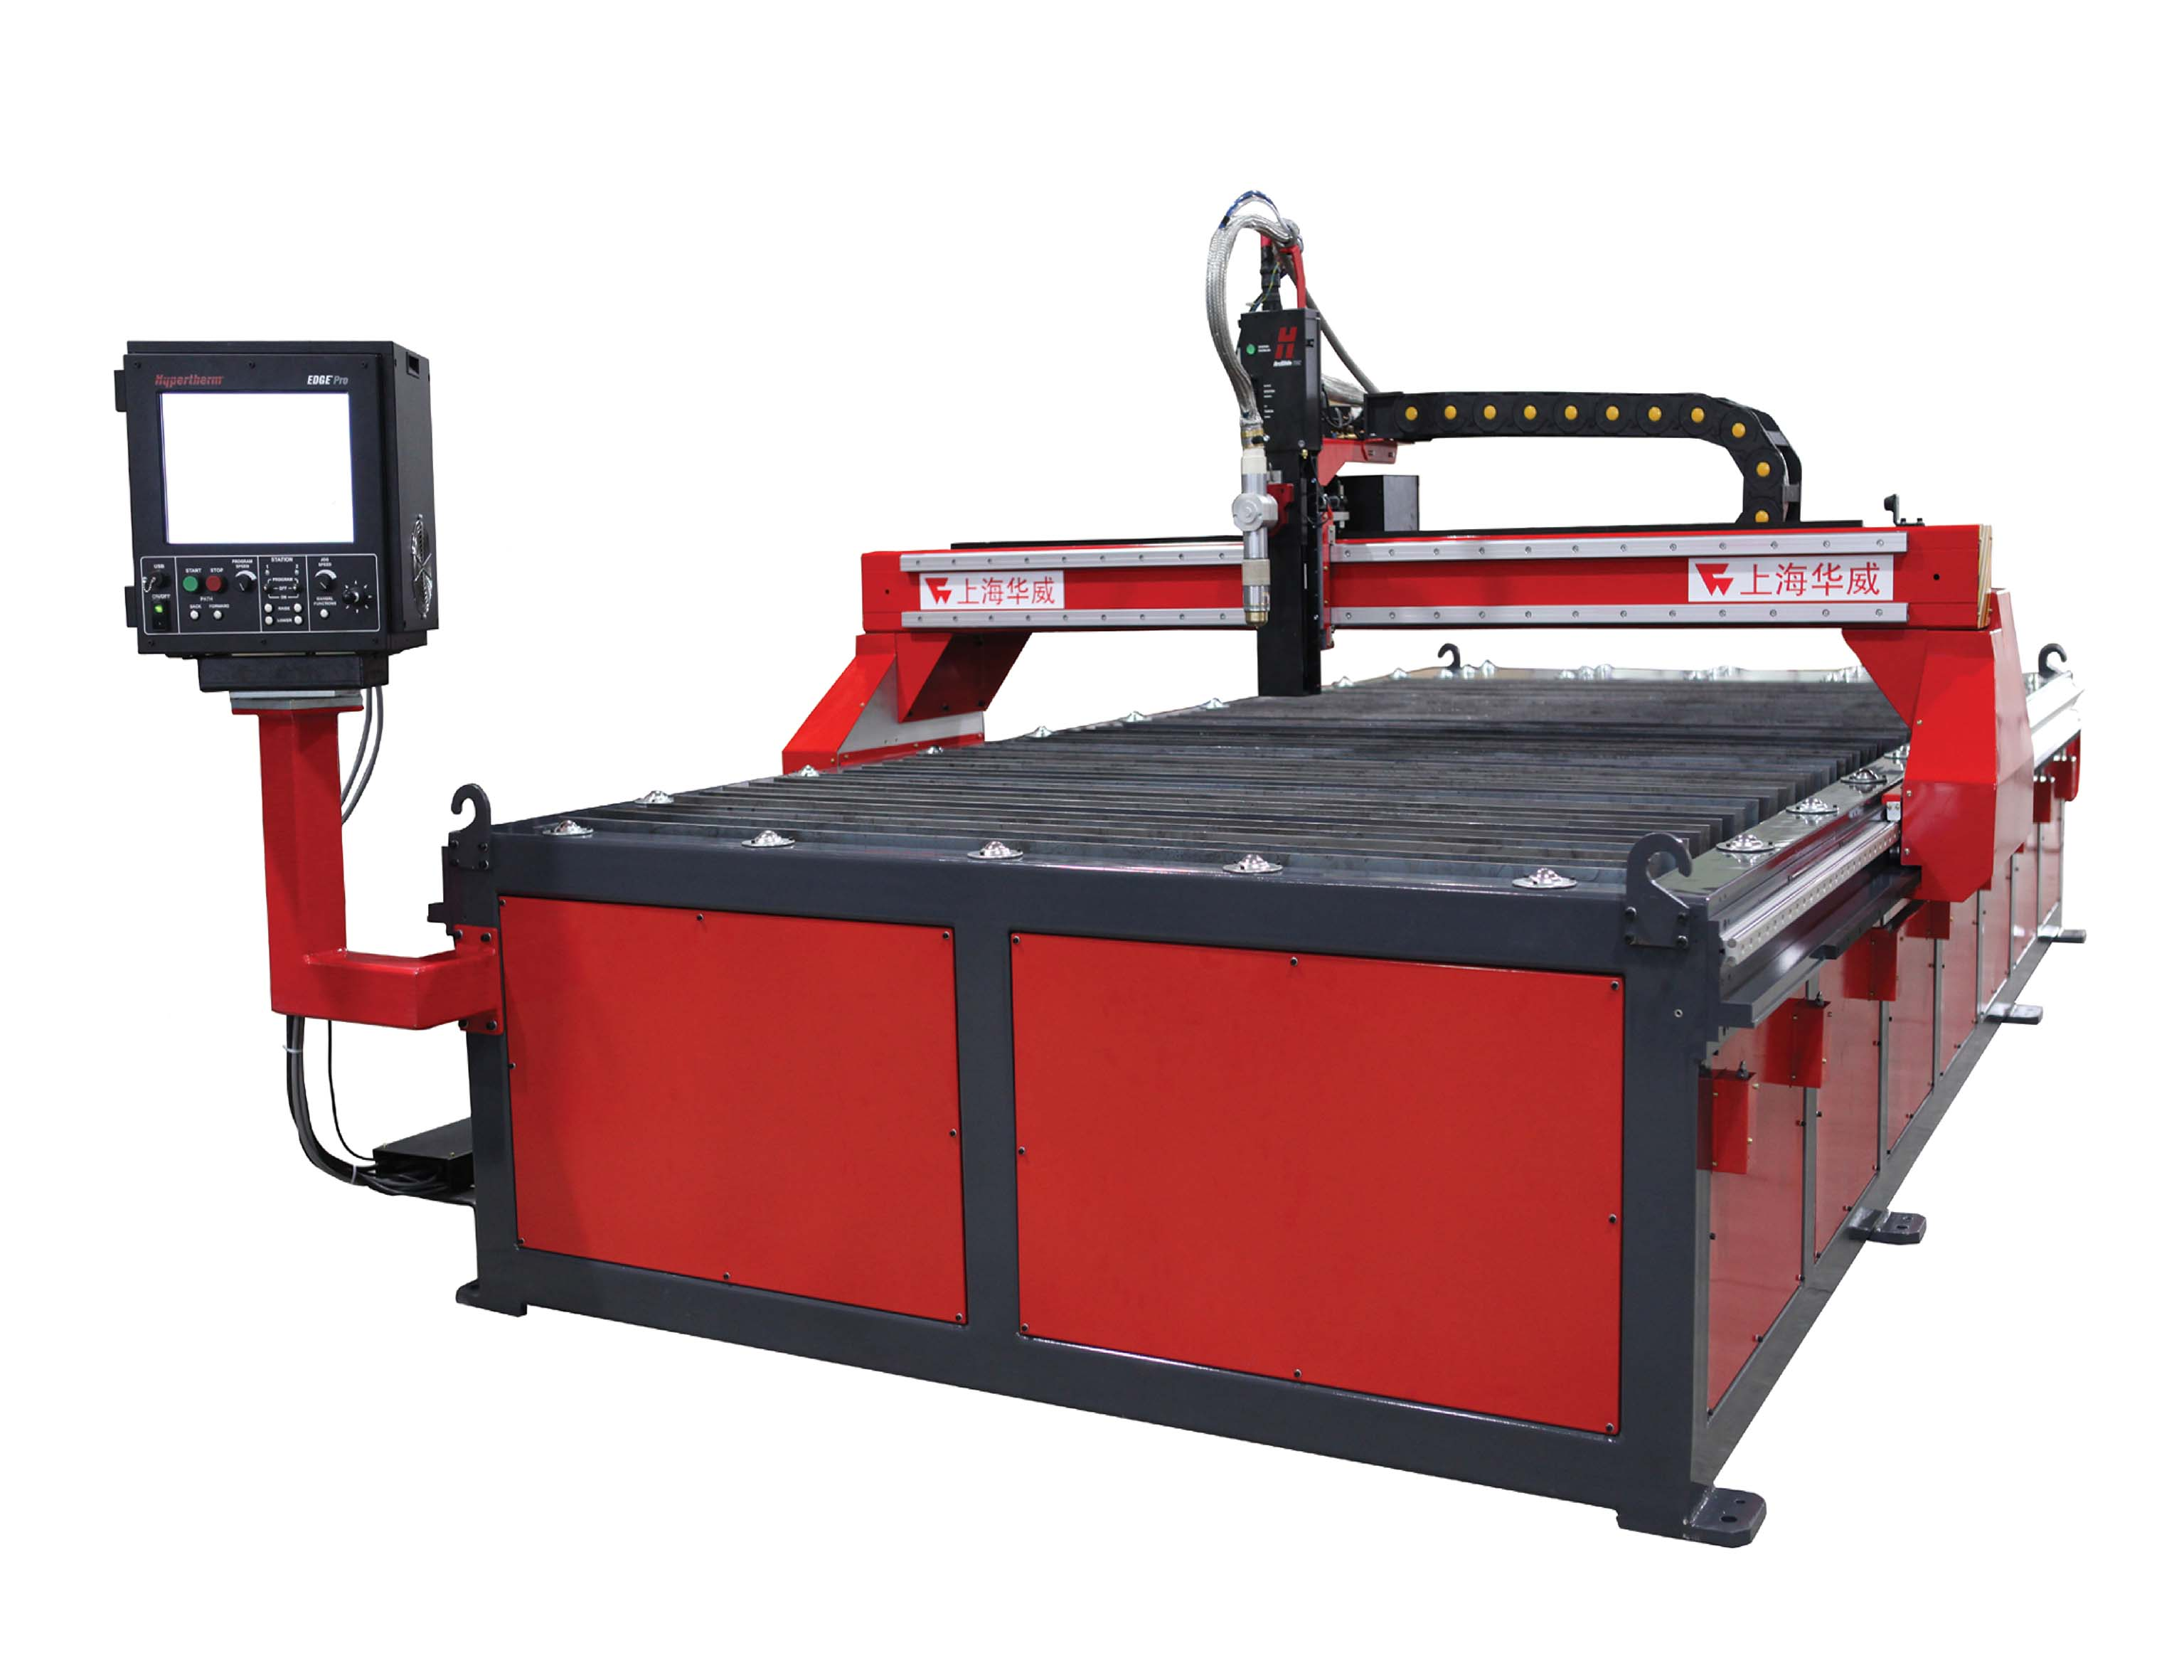 TMG Table model high-speed precision CNC plasma cutting machine